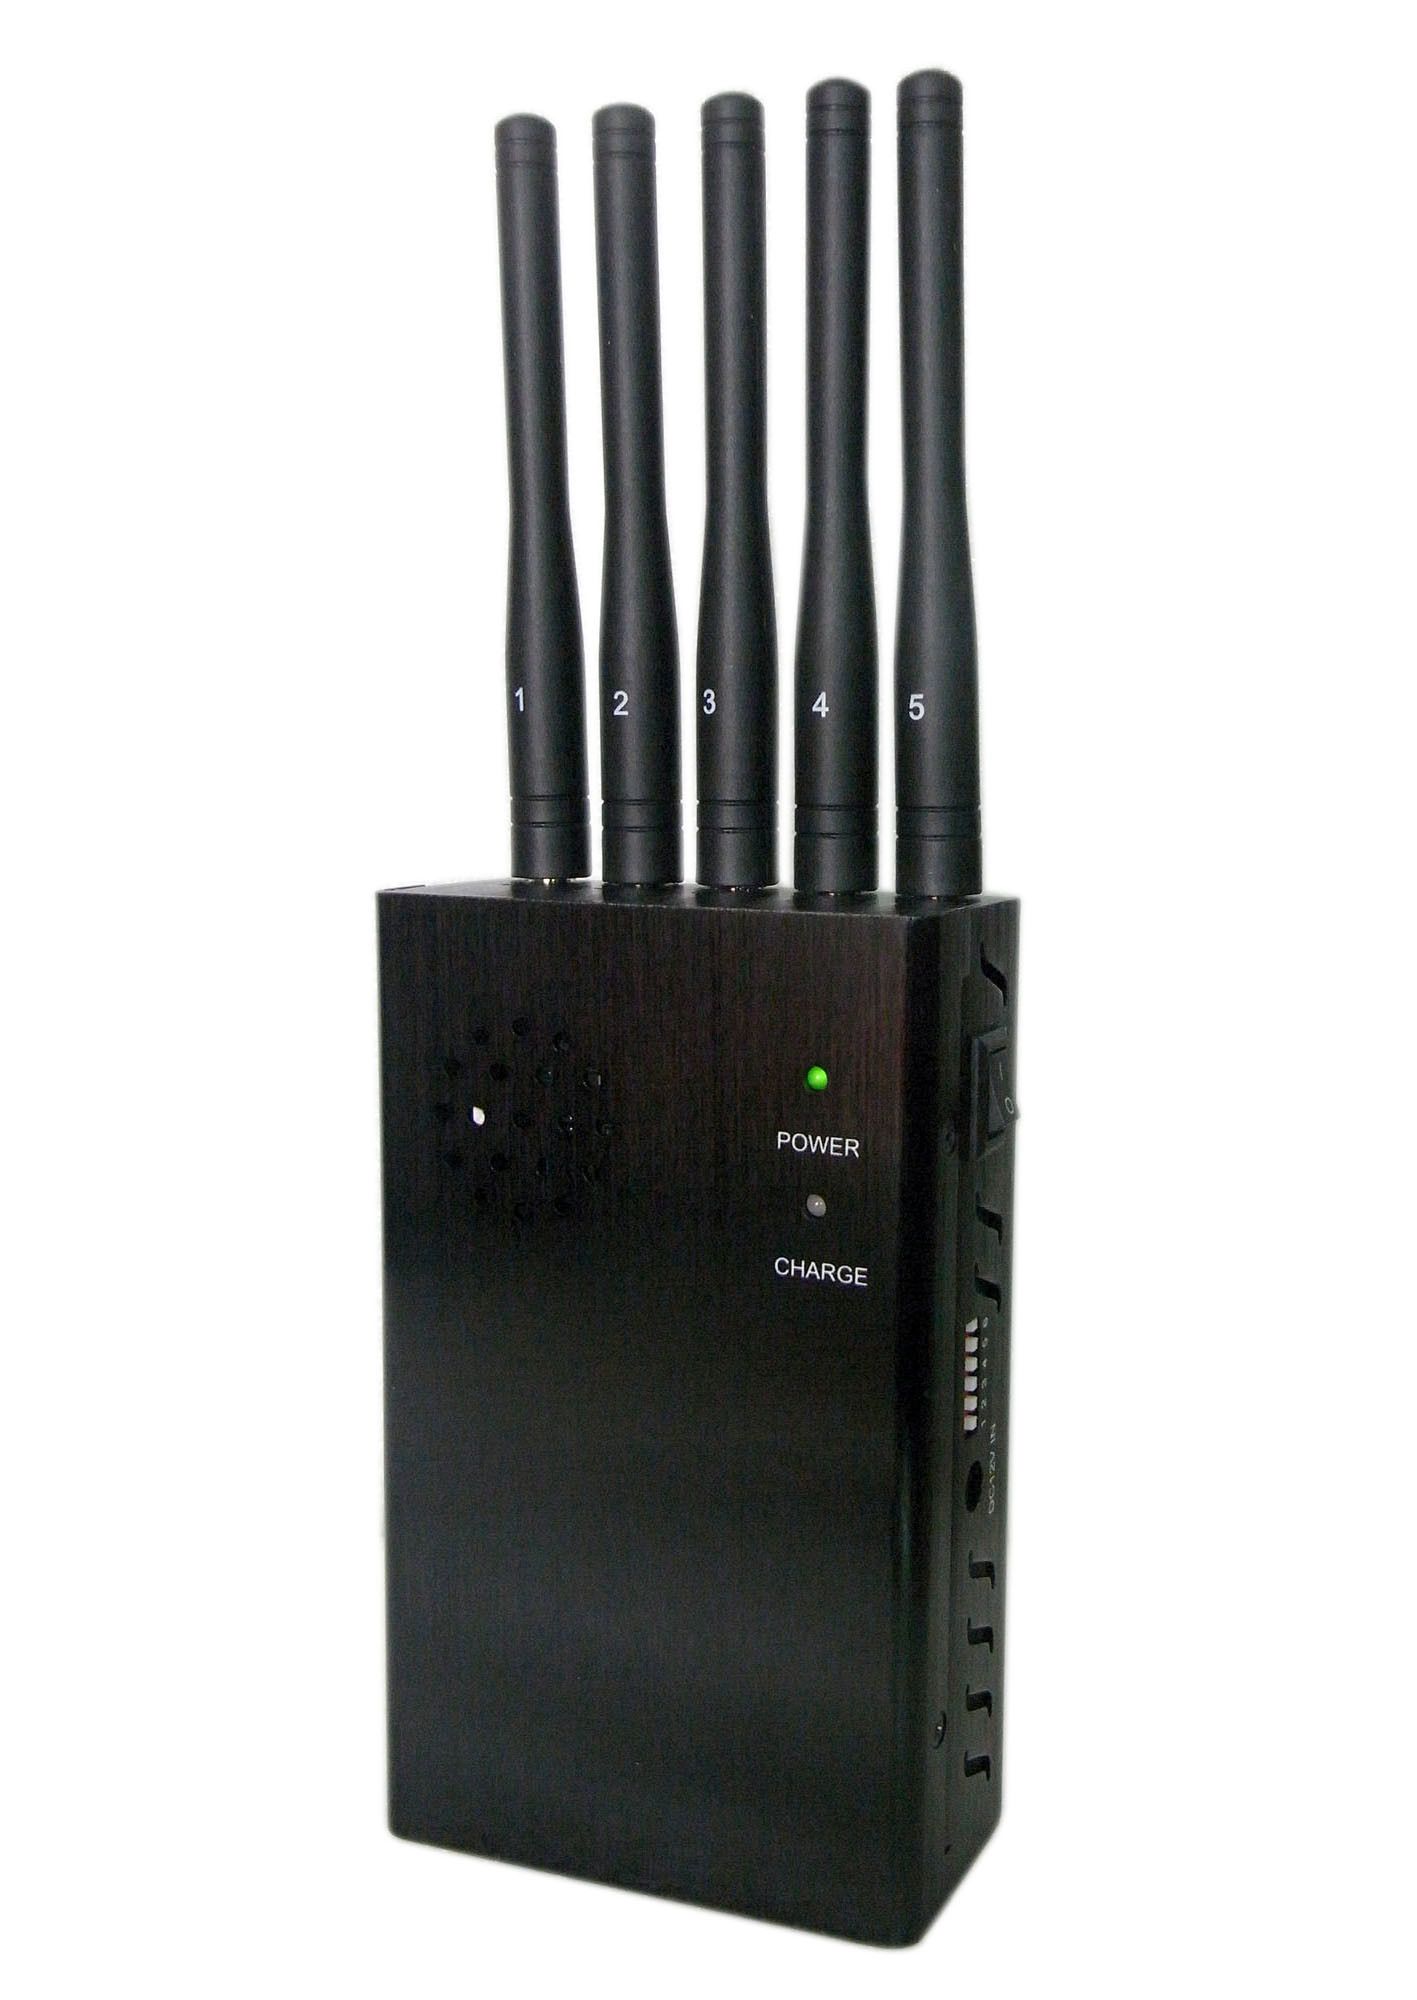 Cell phone jammer TN , cell phone jammer franklinville